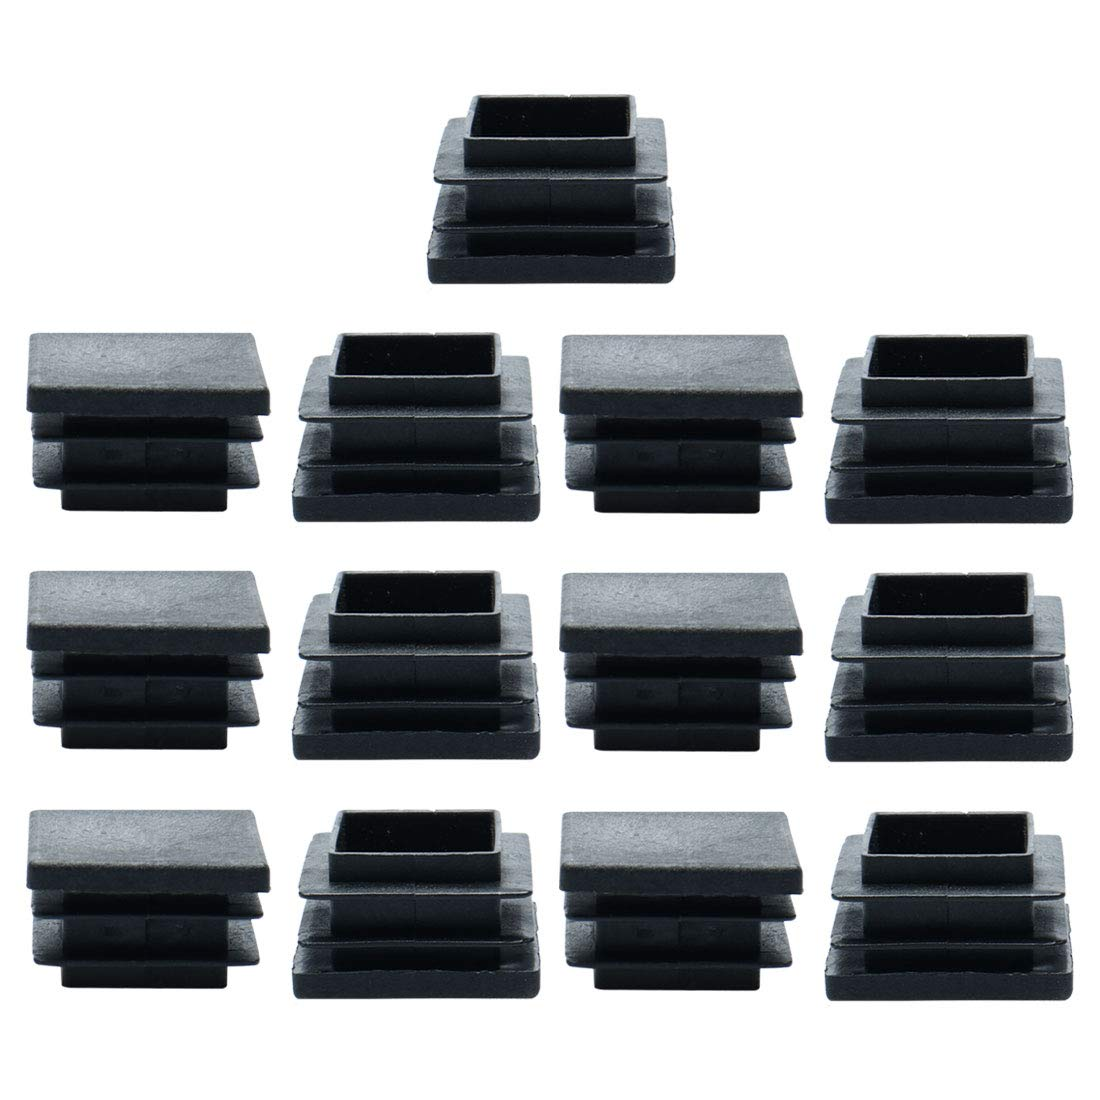 for 3.07 to 3.15 Inner Size Furniture Glide Floor Protector uxcell 13pcs 80 x 80mm Plastic Square Ribbed Tube Inserts End Covers Cap